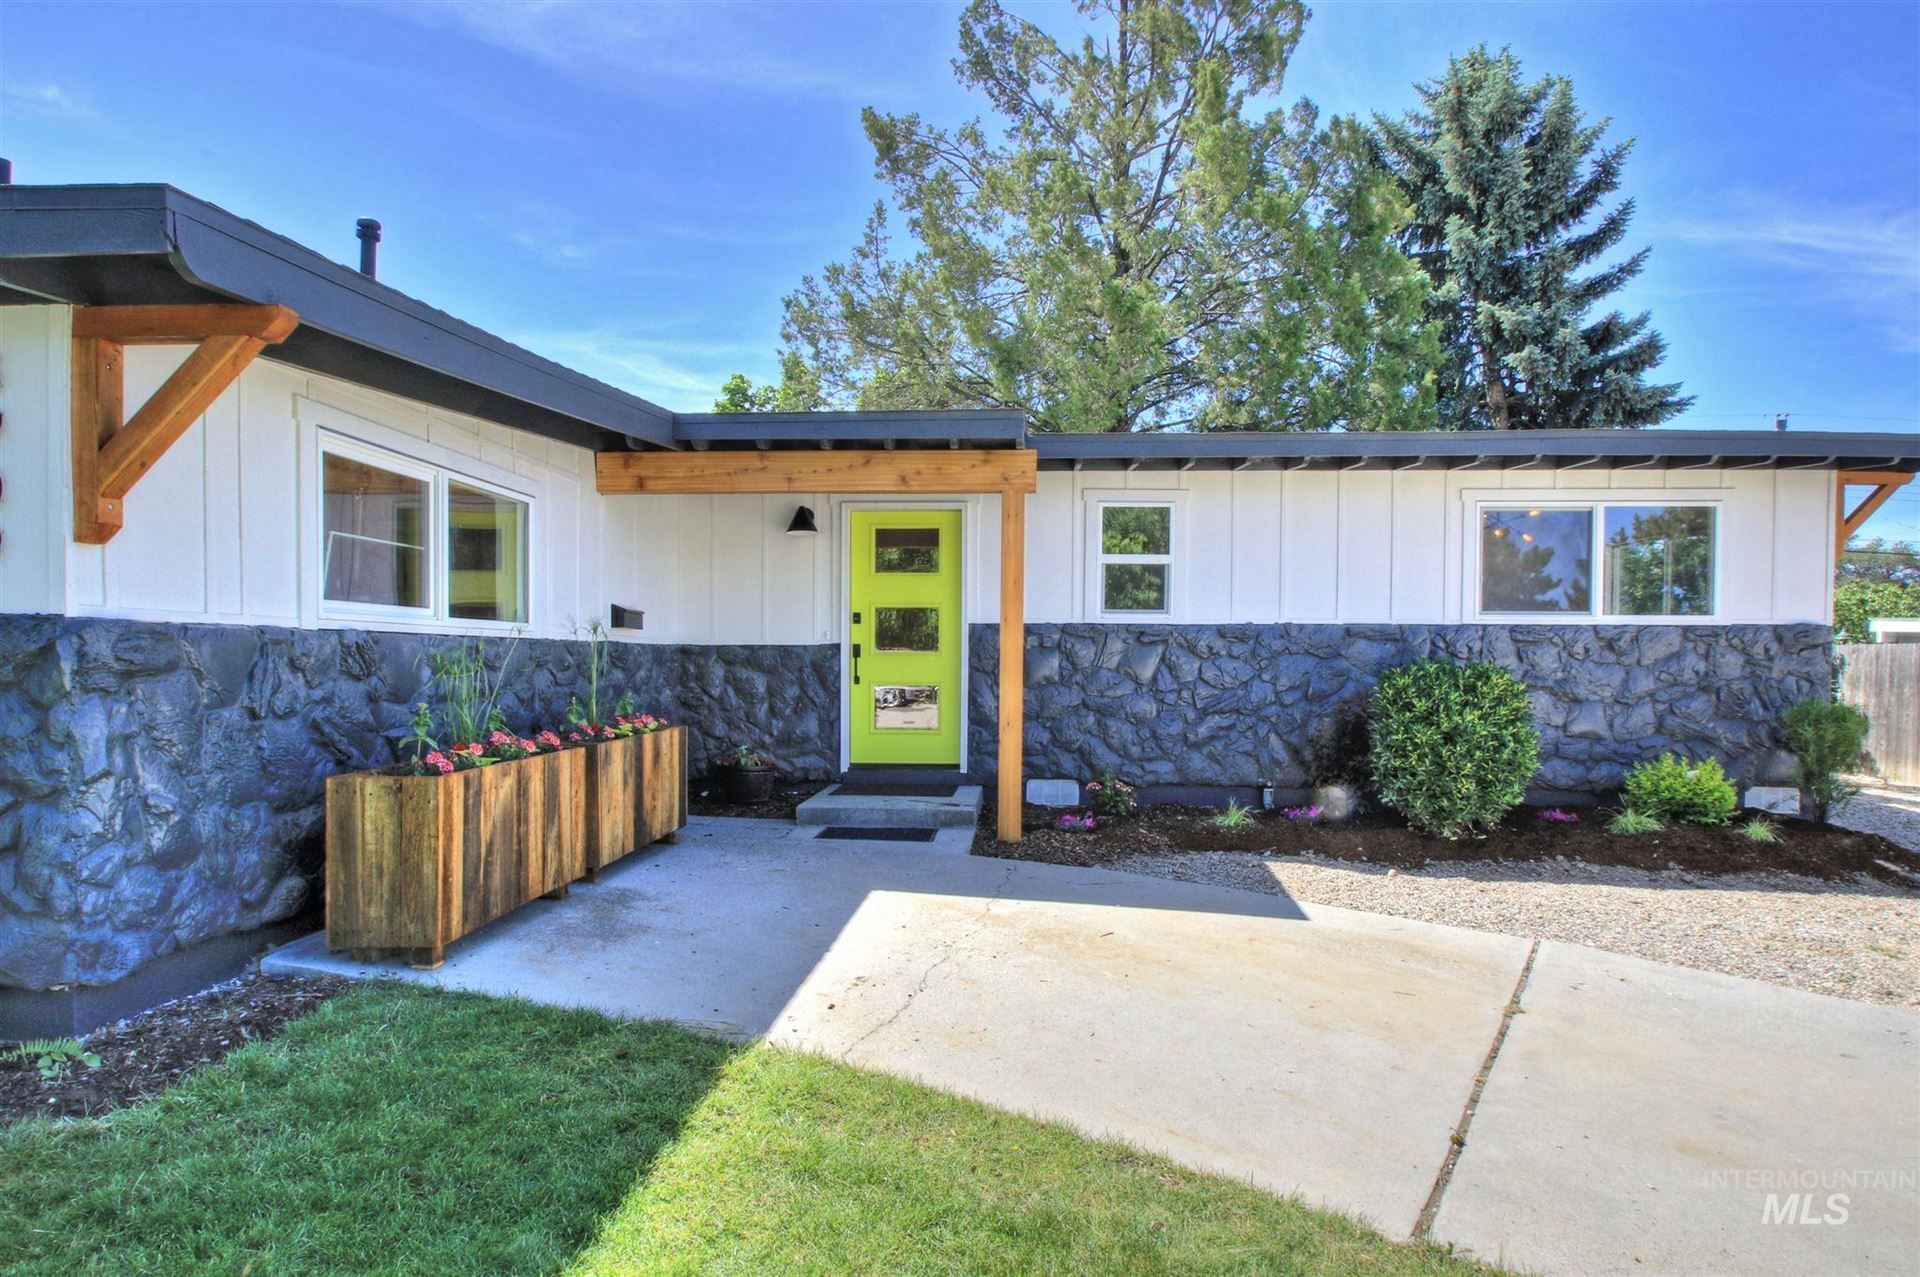 Photo of 3909 W. Normandie Dr., Boise, ID 83705 (MLS # 98768512)